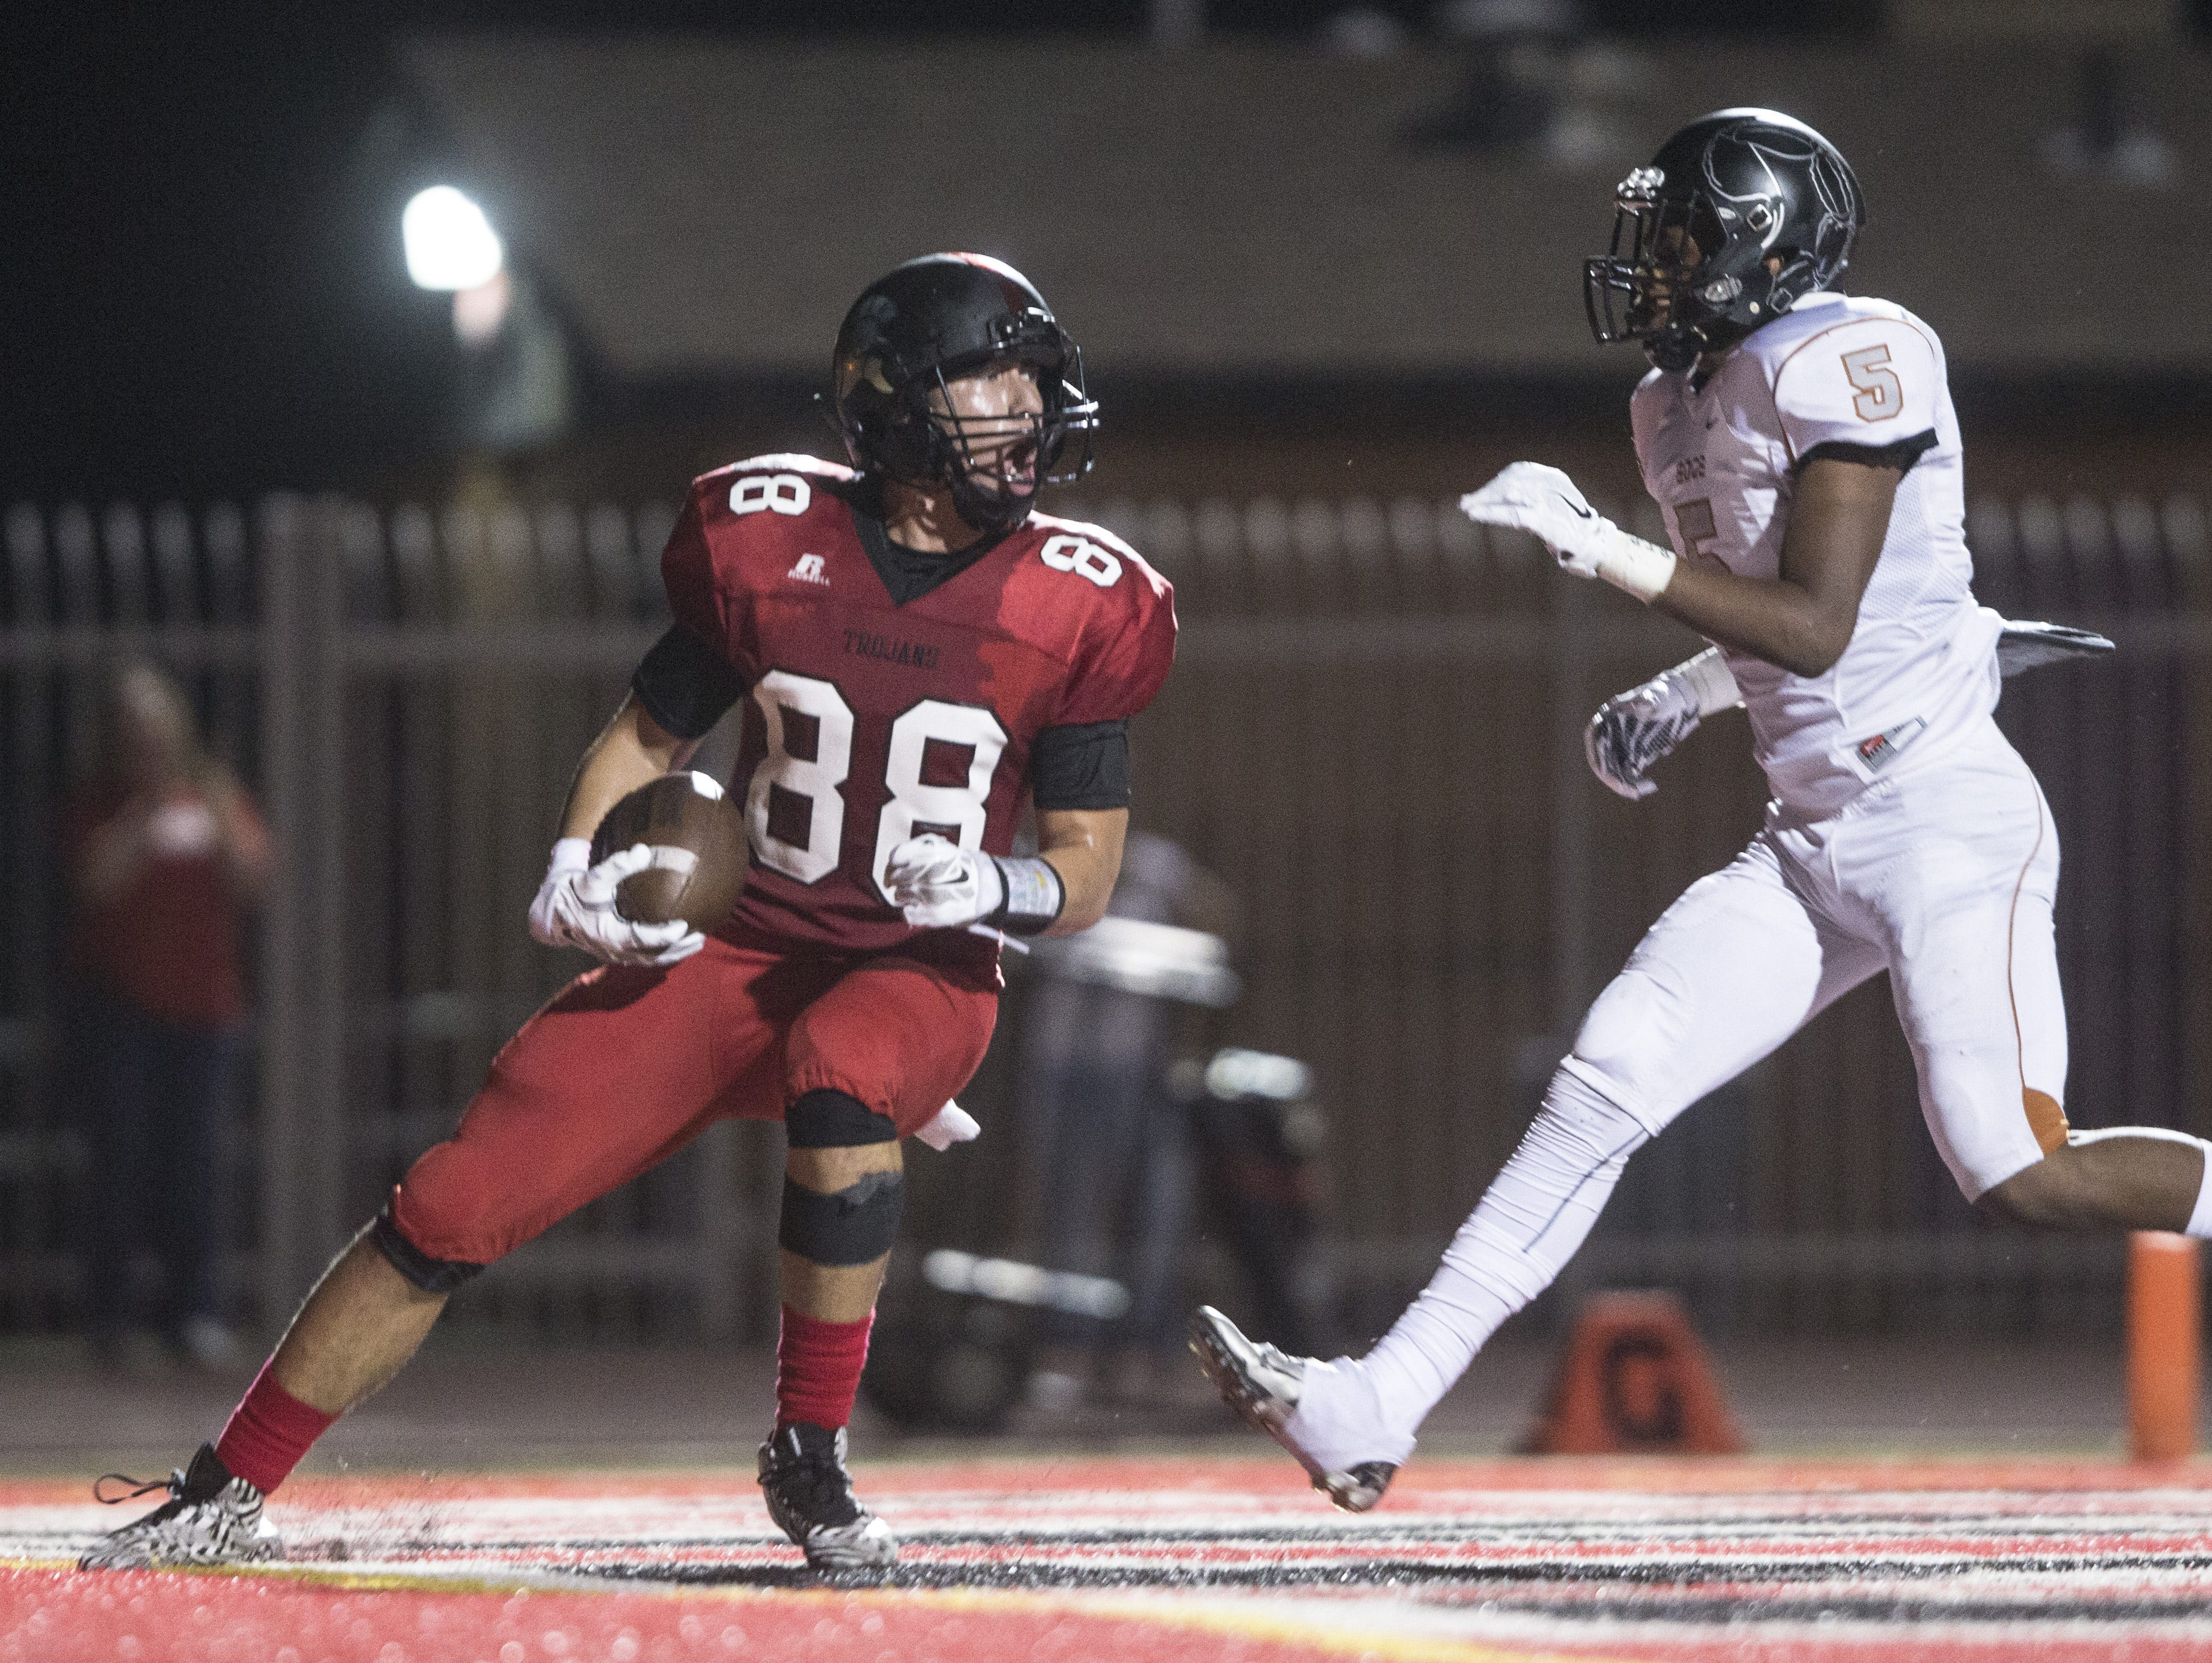 Paradise Valley's Aron Smith breaks free for a touchdown reception against Desert Edge's Daejzon Burton (5) at Paradise Valley High School in Paradise Valley, AZ on September 3, 2015.